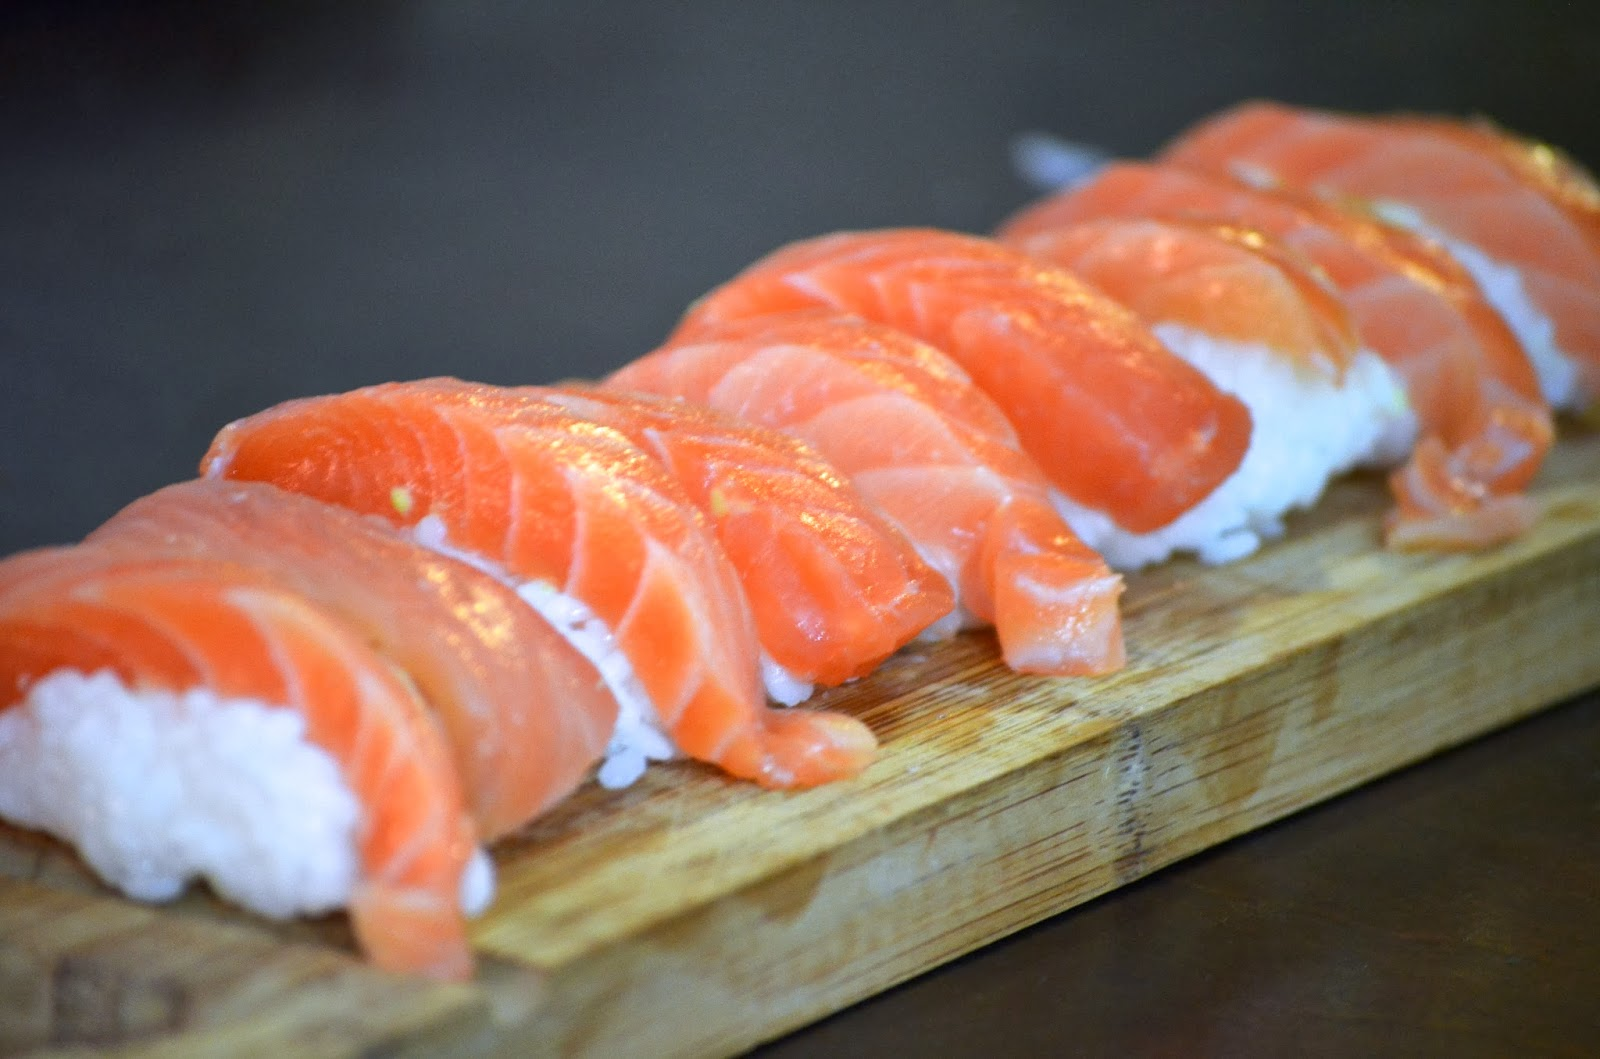 Salmon sashimi from costco obsessive cooking disorder for How to freeze fish